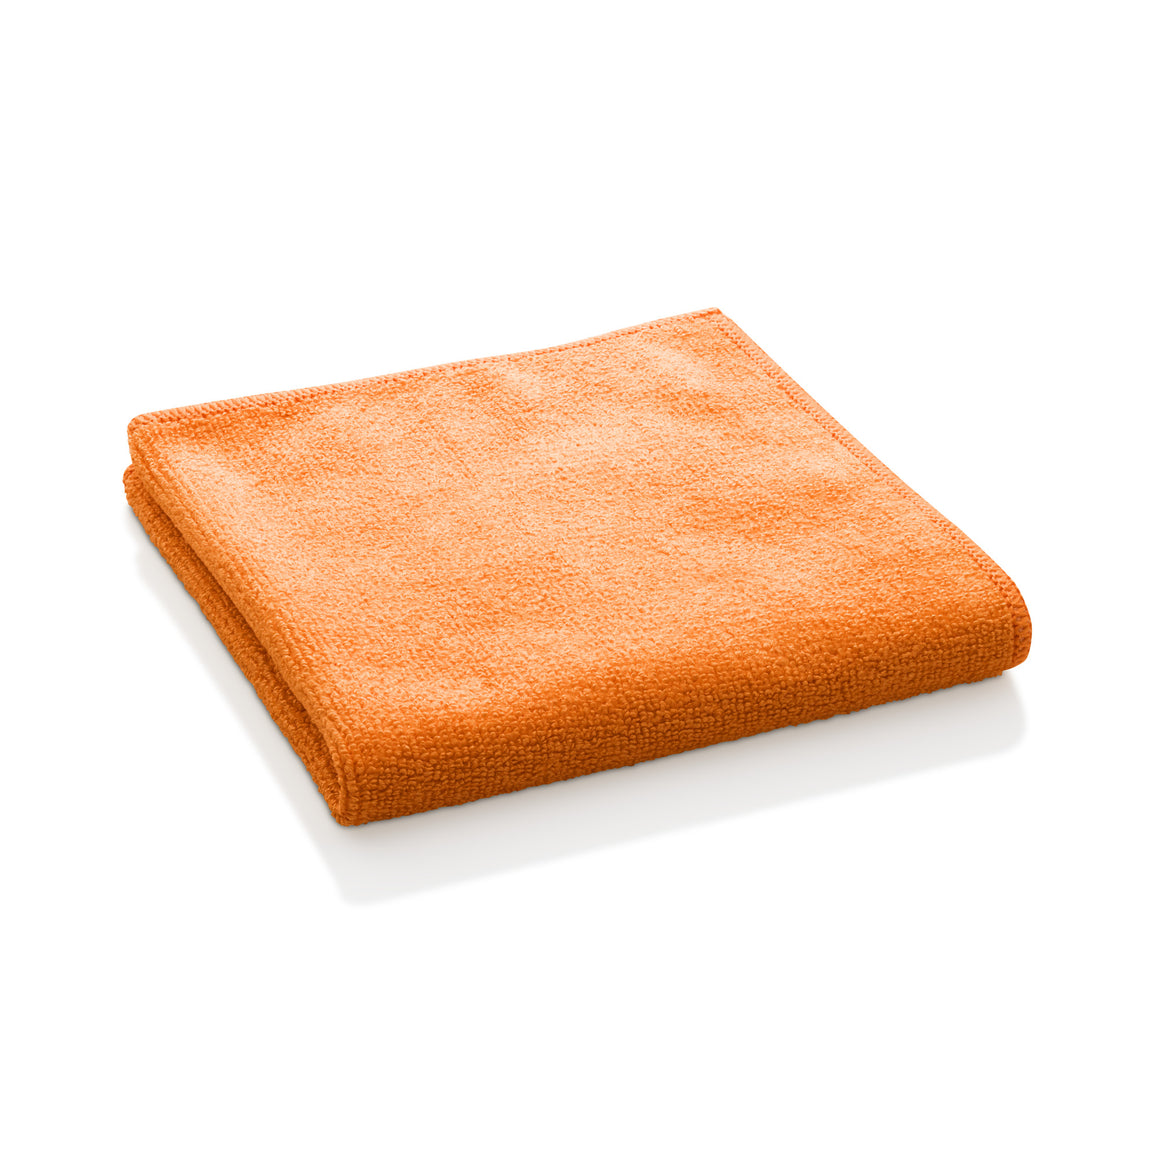 Car Cleaning Cloth - Brilliant for No-Scratch Auto Care - Premium Microfiber - Just Add Water